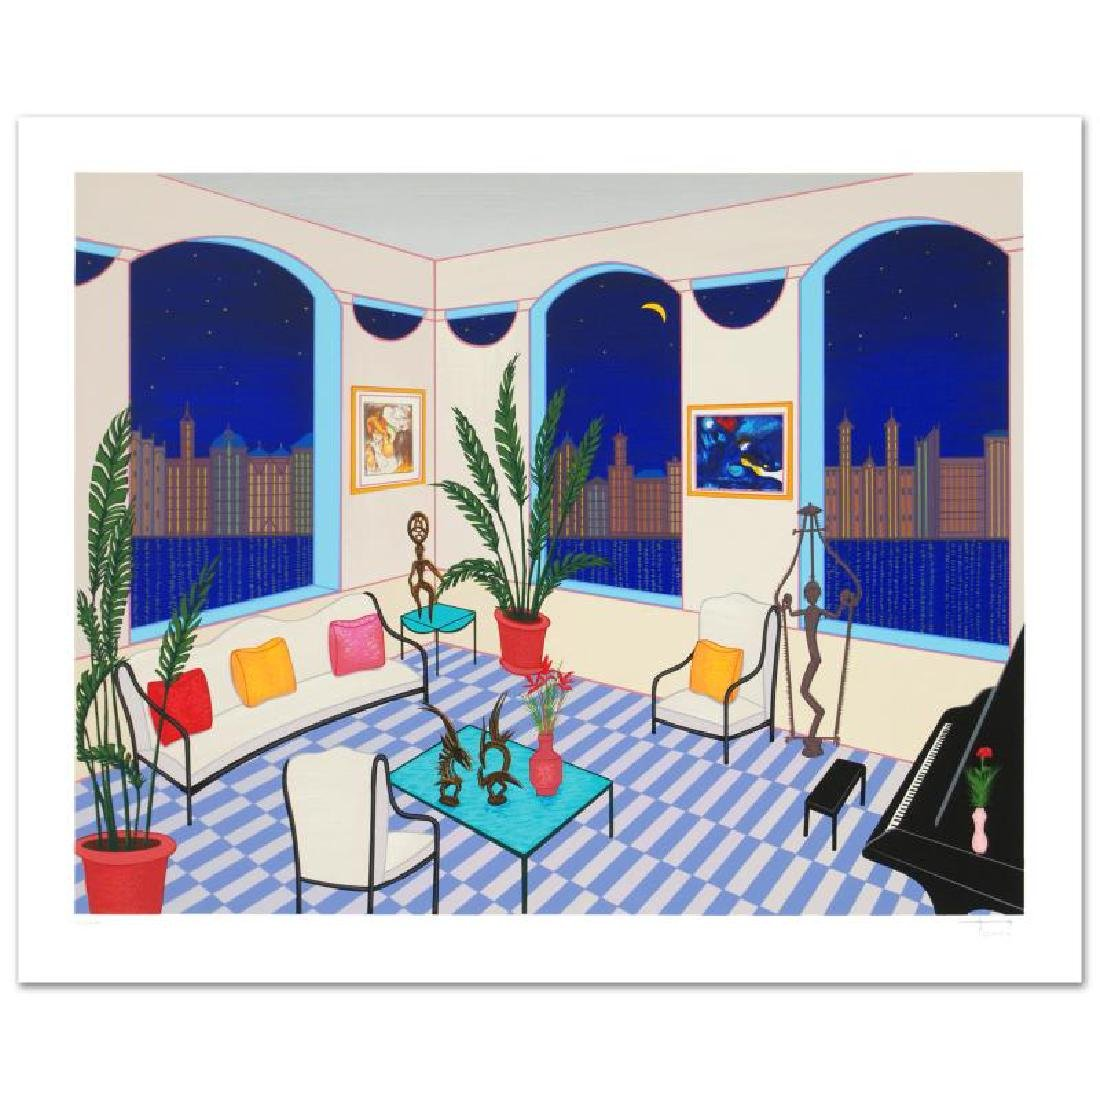 Interior with Primitive Art Limited Edition Serigraph - 3